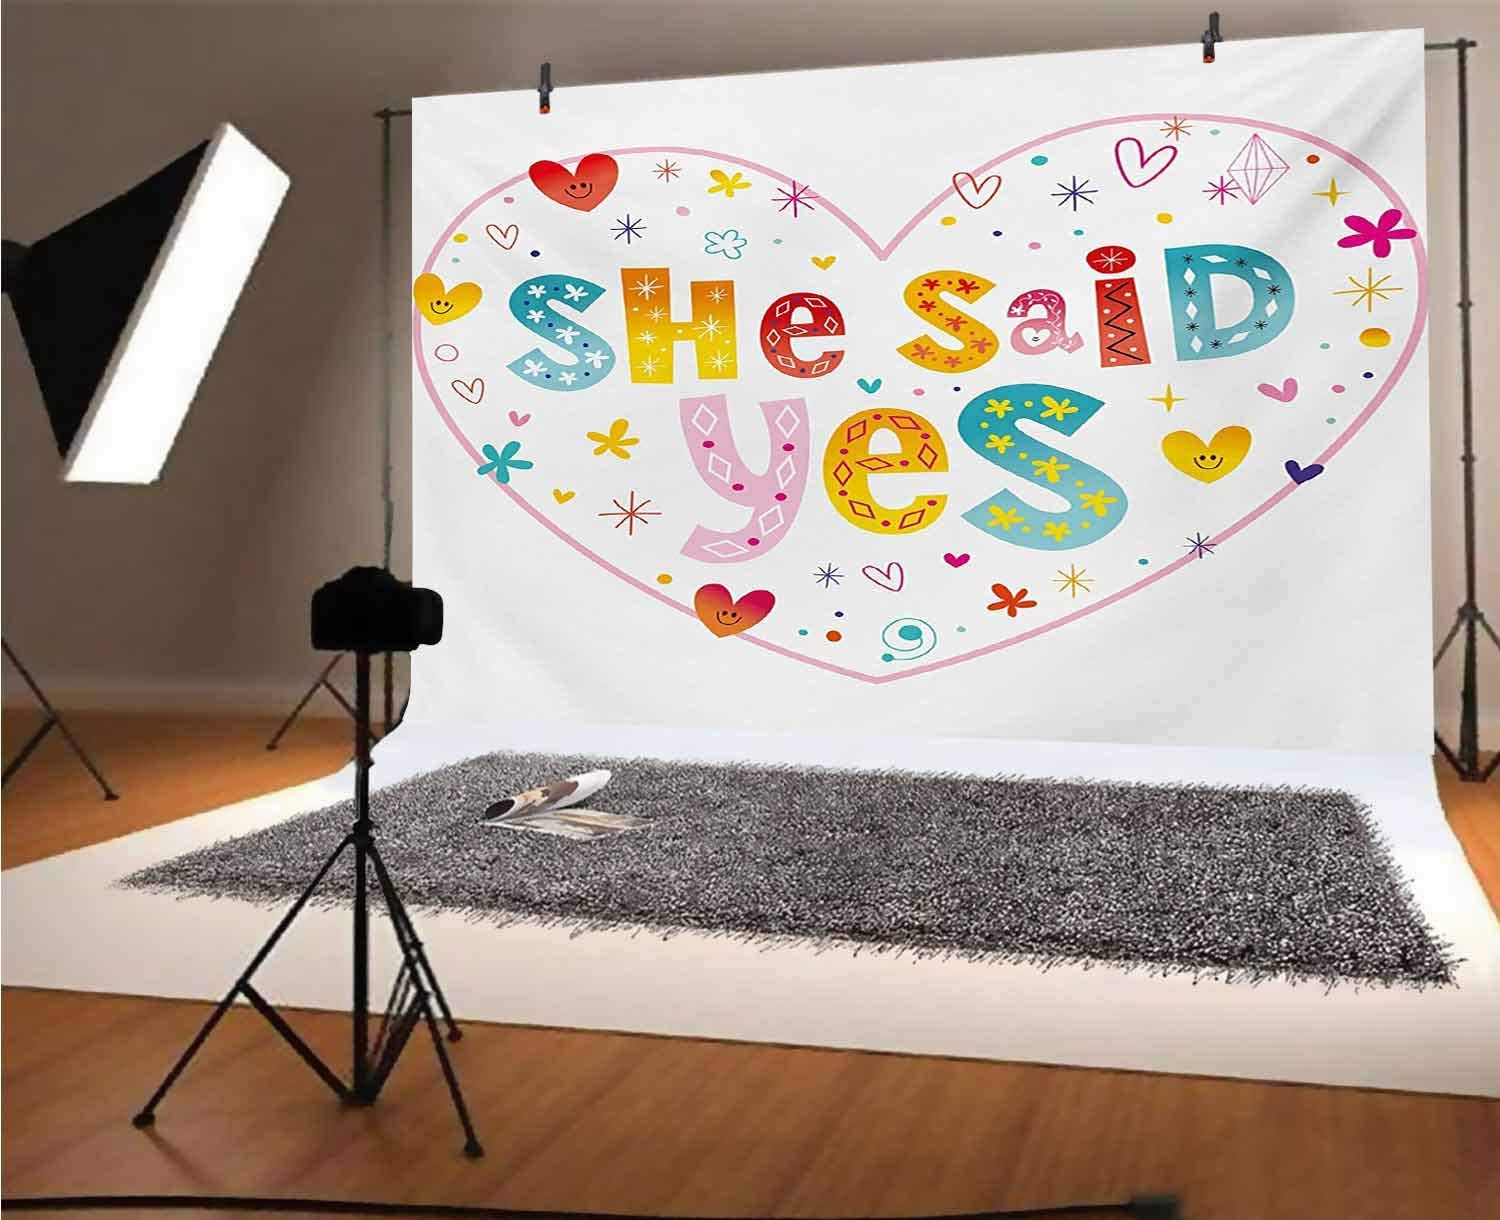 Vintage 15x10 FT Vinyl Backdrop PhotographersHand Lettering on a Grunge Design Inspired Background Motivational Slogan Background for Party Home Decor Outdoorsy Theme Shoot Props